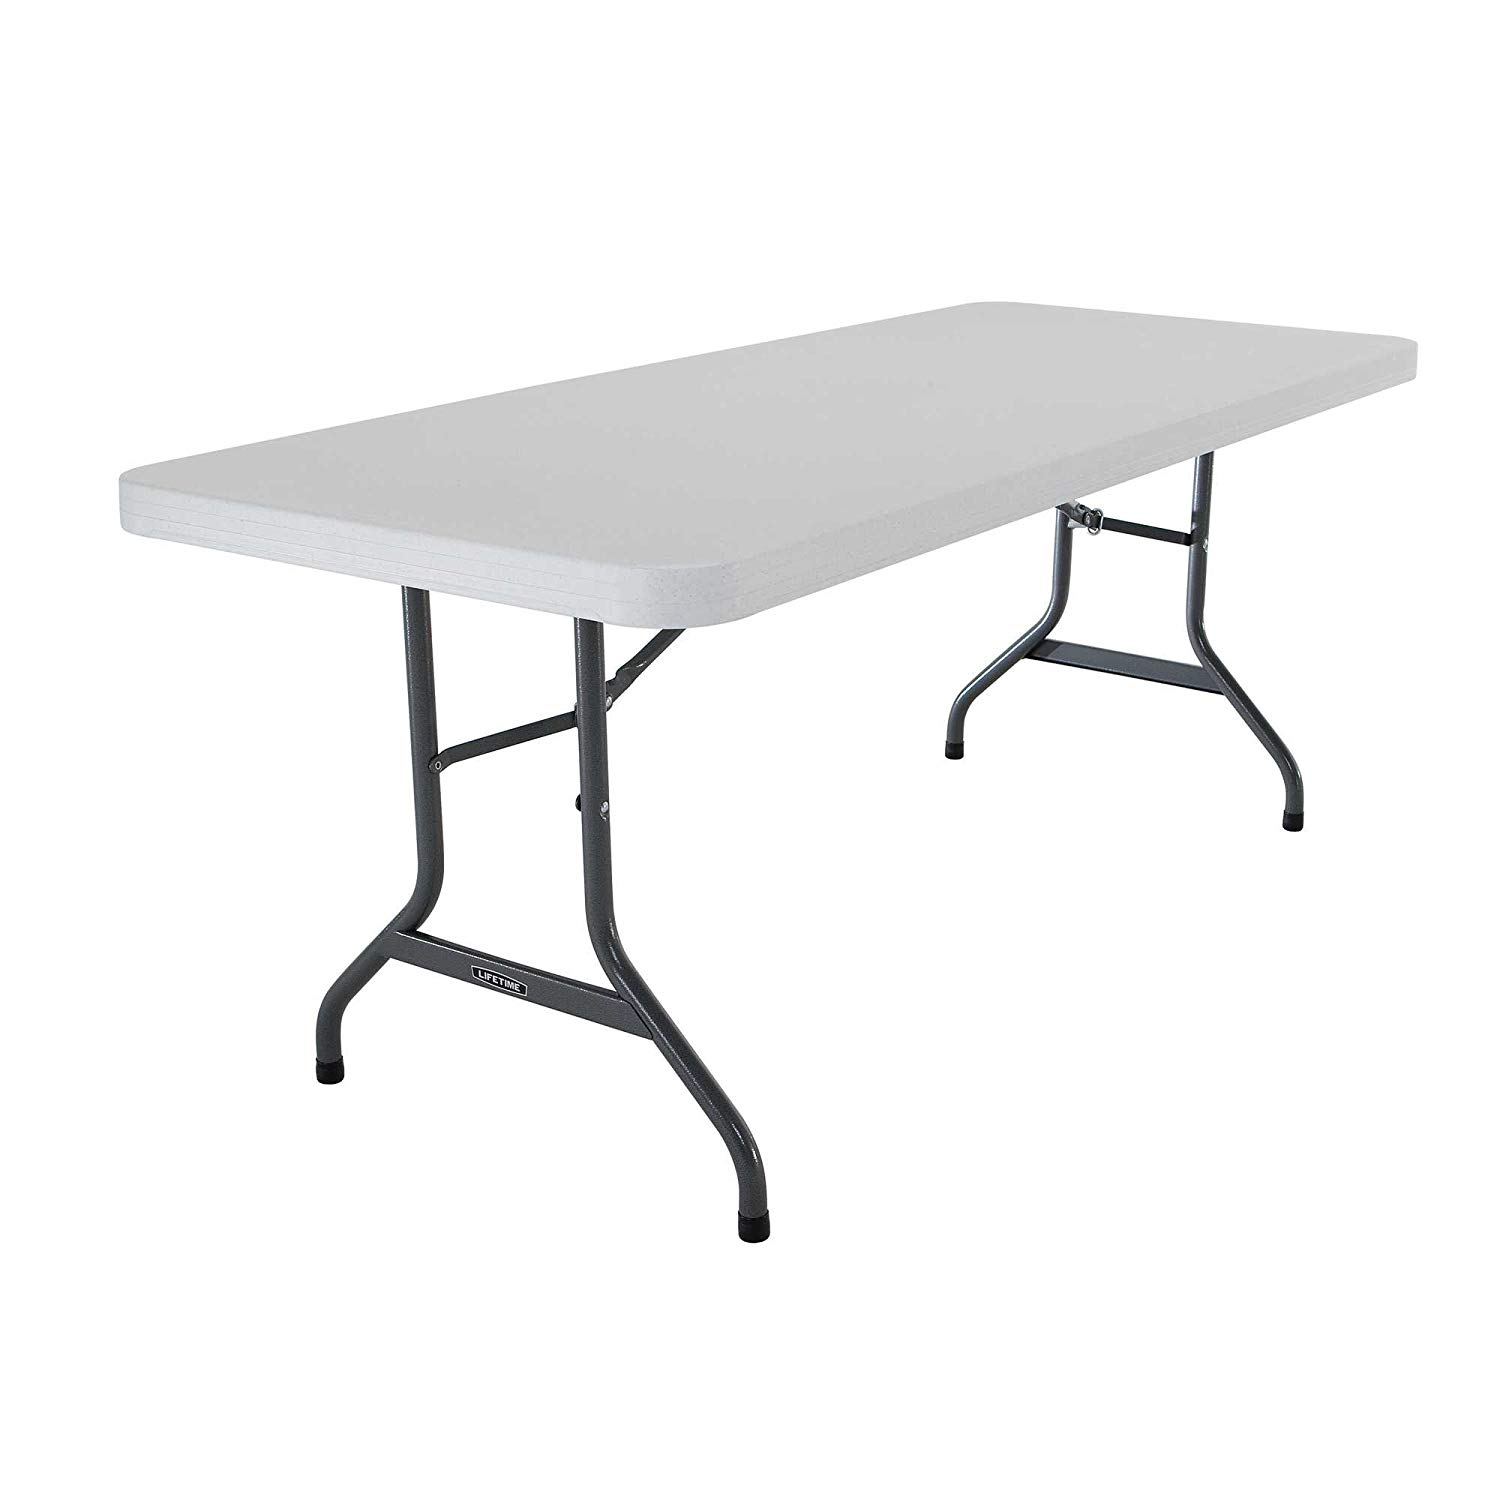 5and6ft_folding_tables